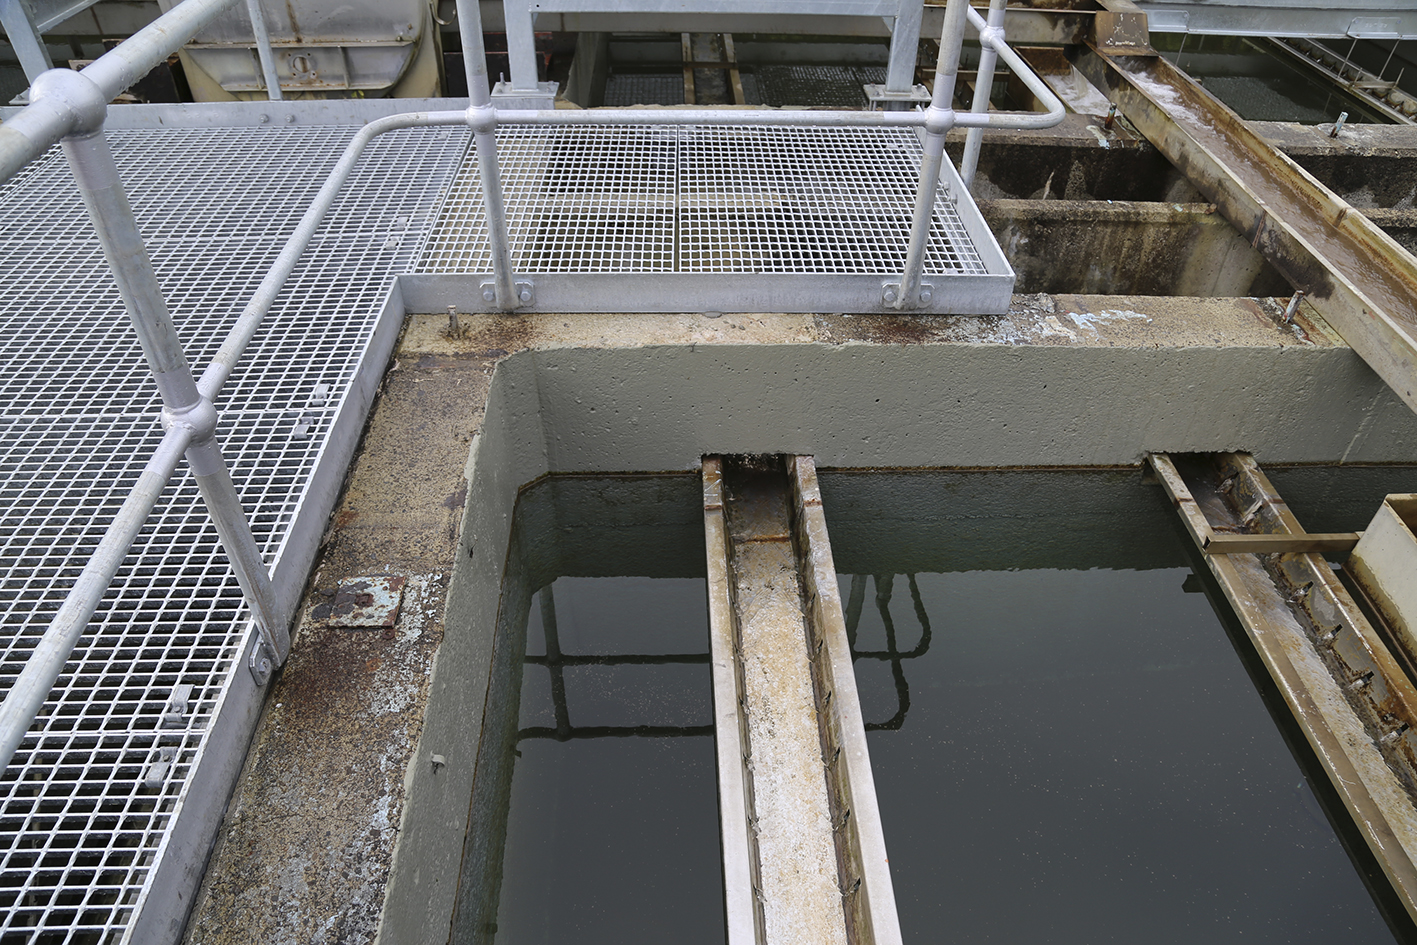 All four of the treatment plant's clarifiers have now been refurbished